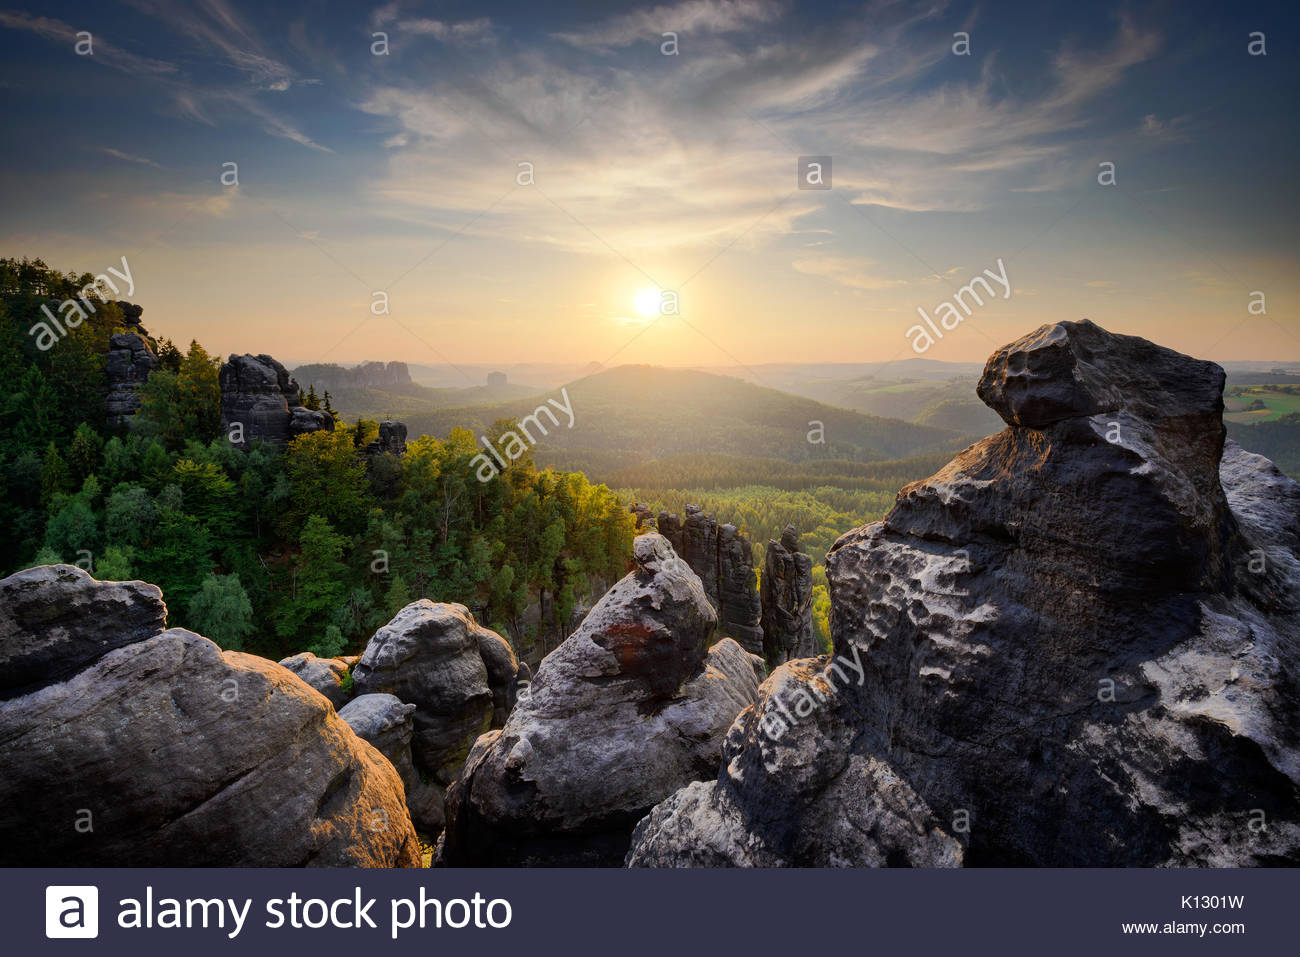 Amazing sunset view at Saxon Switzerland National park, Germany - Stock Image